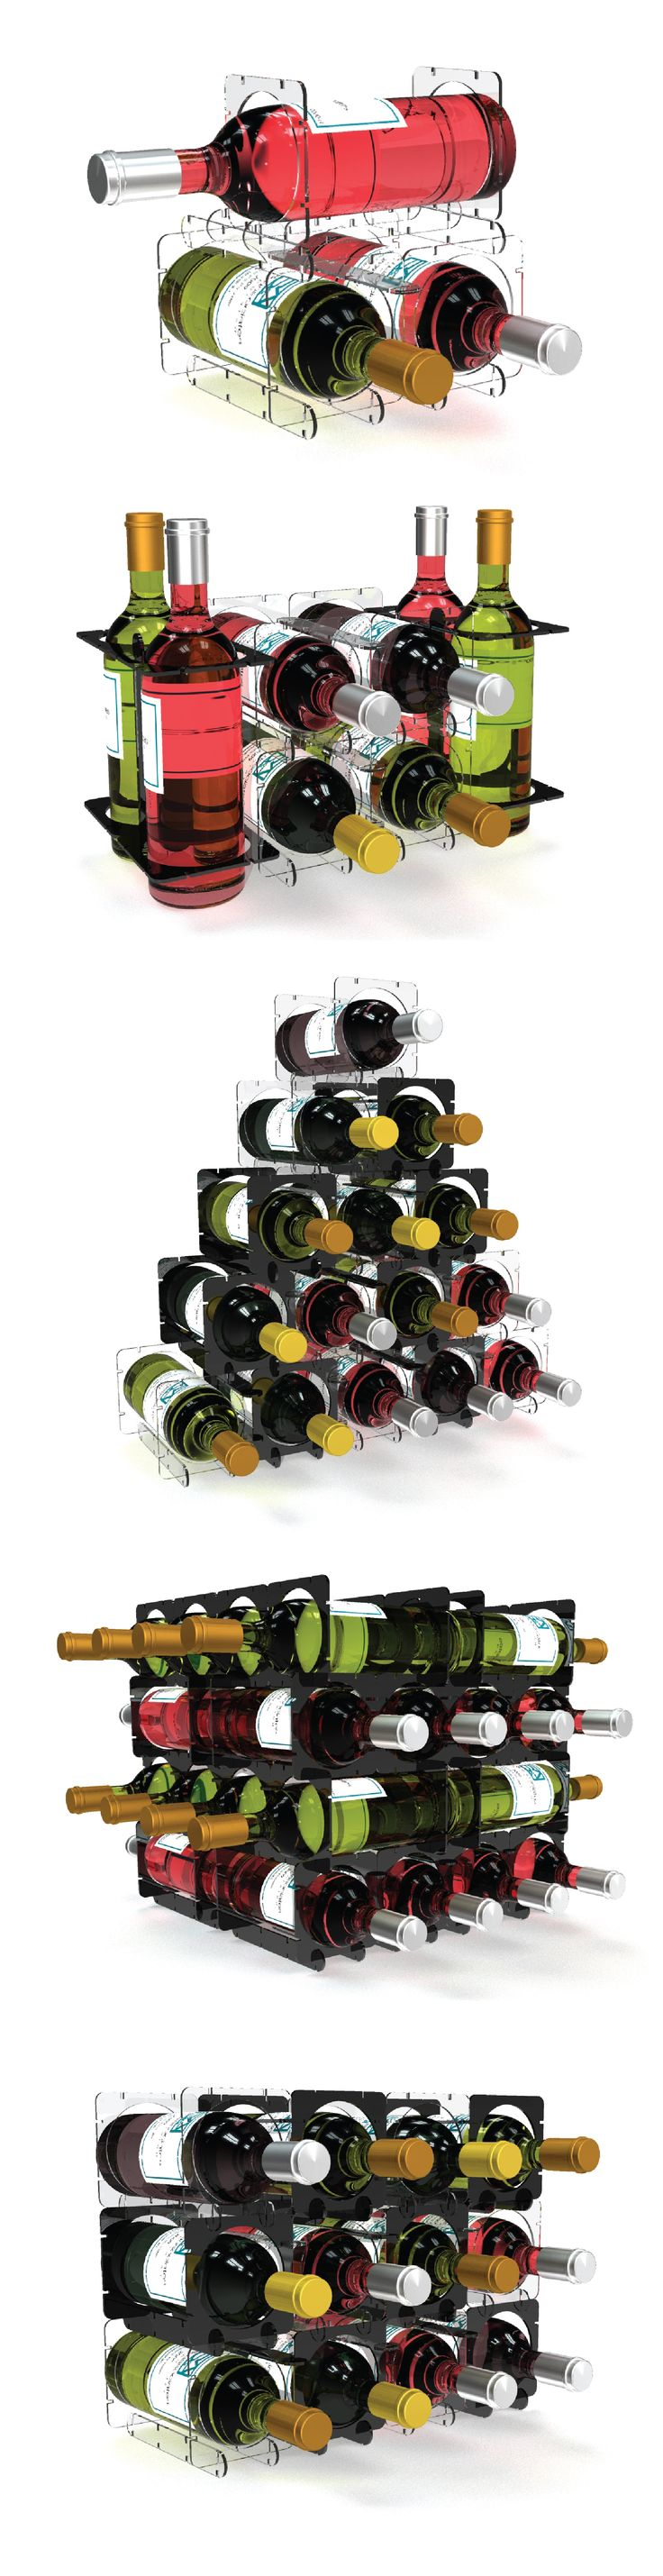 Bottle storage doesn't have to be boring. Design your bottle rack however you'd like with LINKOS!